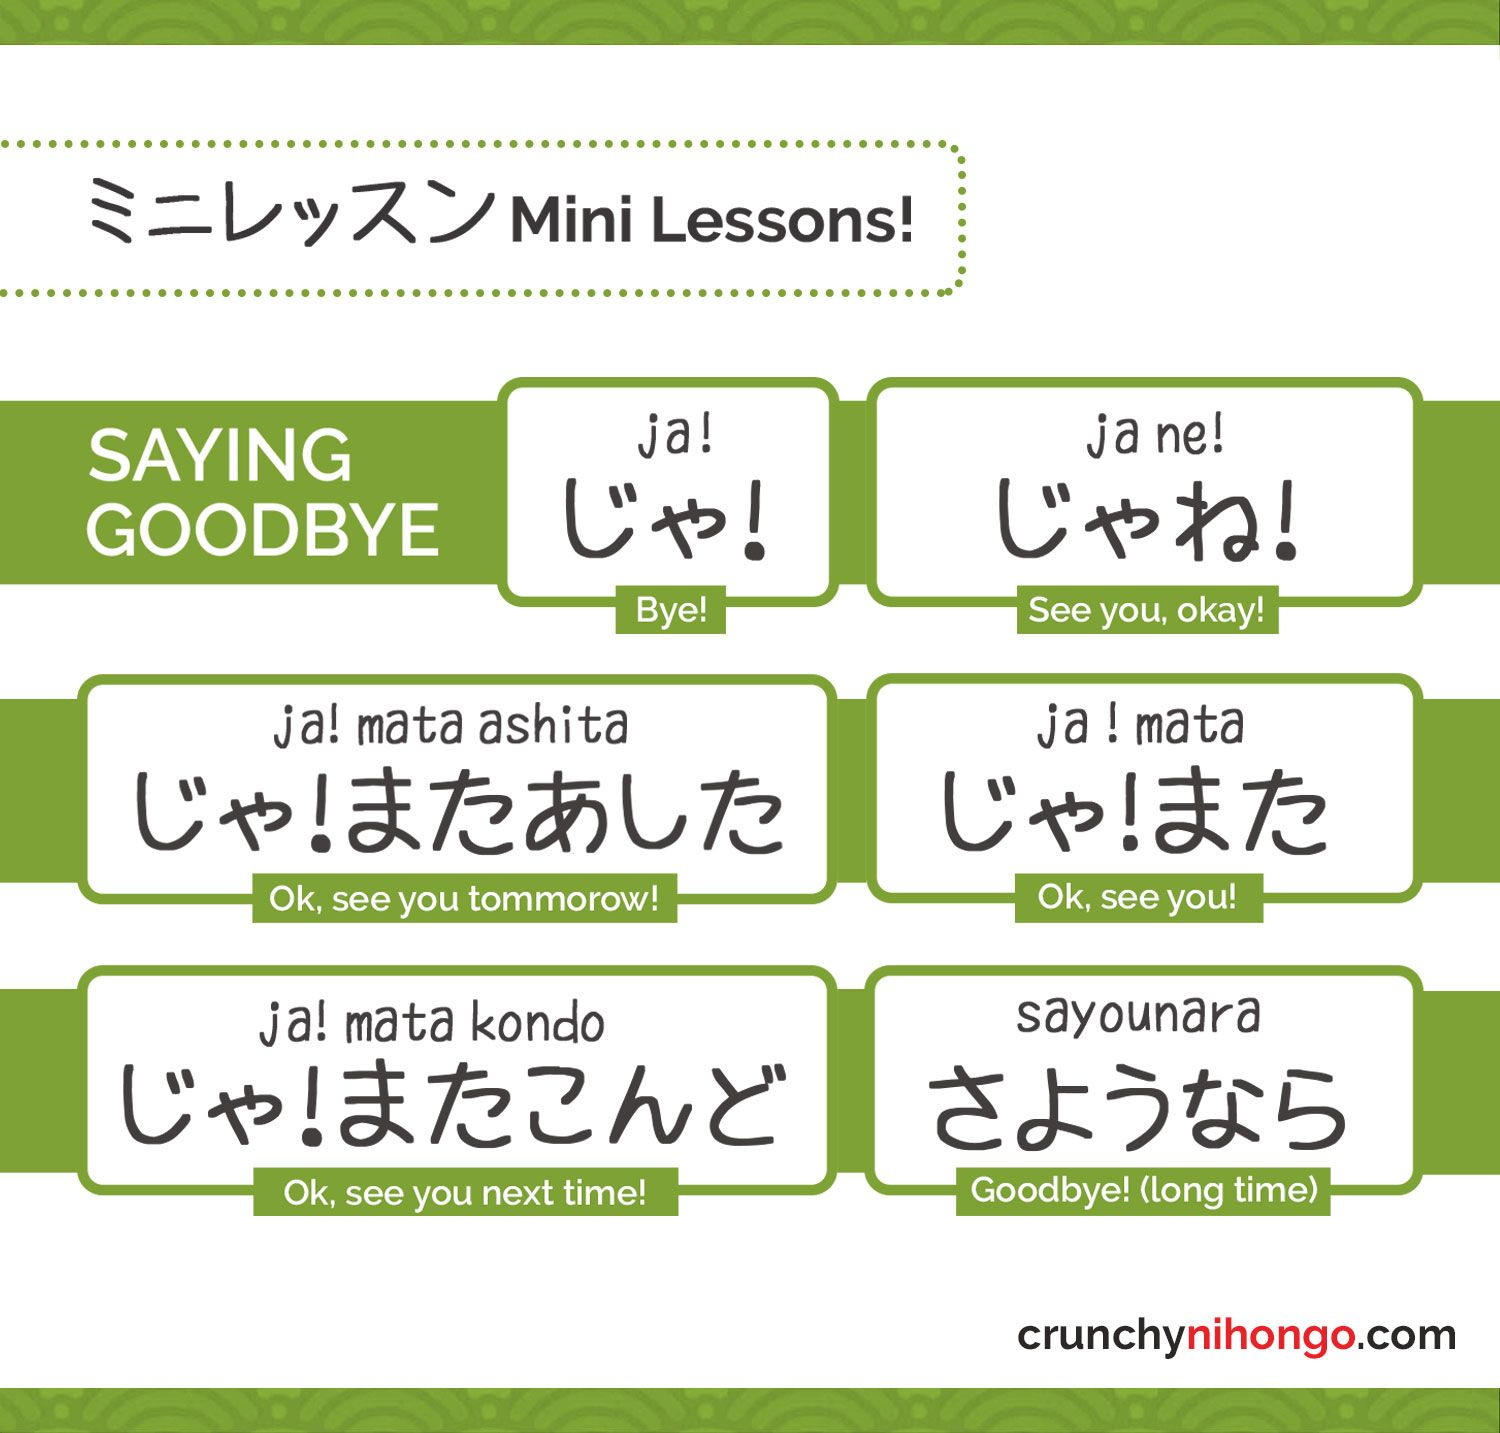 Pin By Kirsty Innes On Japanese In 2020 Japanese Language Japanese Language Learning Japanese Phrases